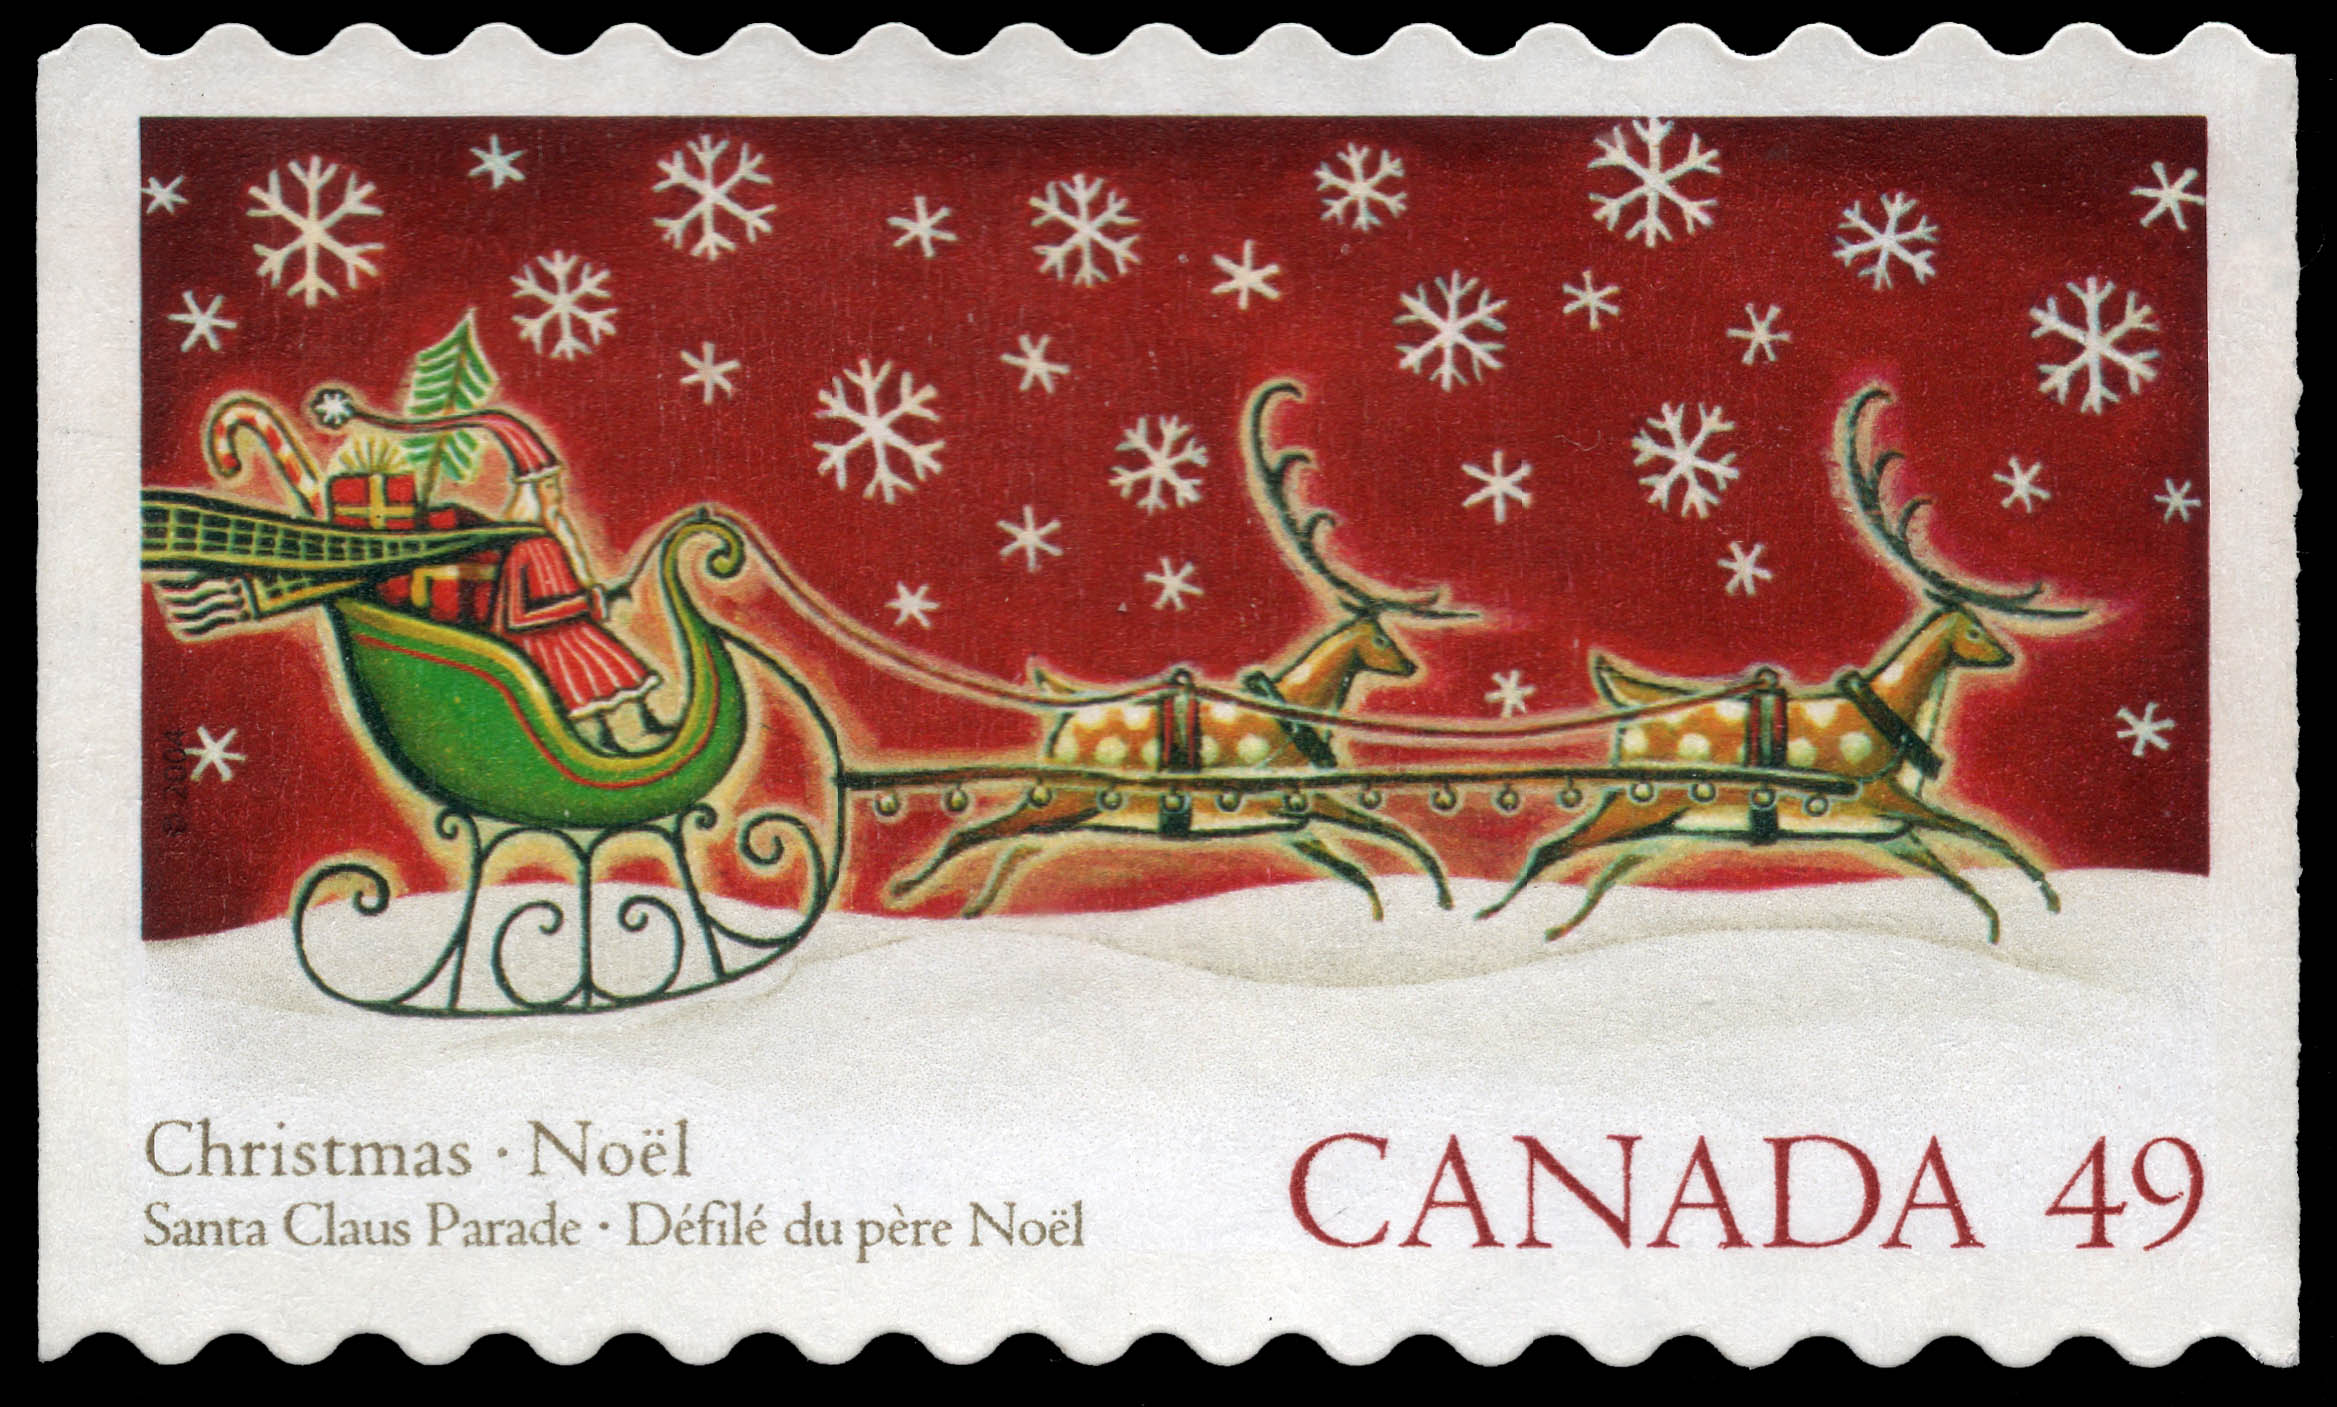 Santa Claus in a Sled Canada Postage Stamp | Christmas : Santa Claus parade